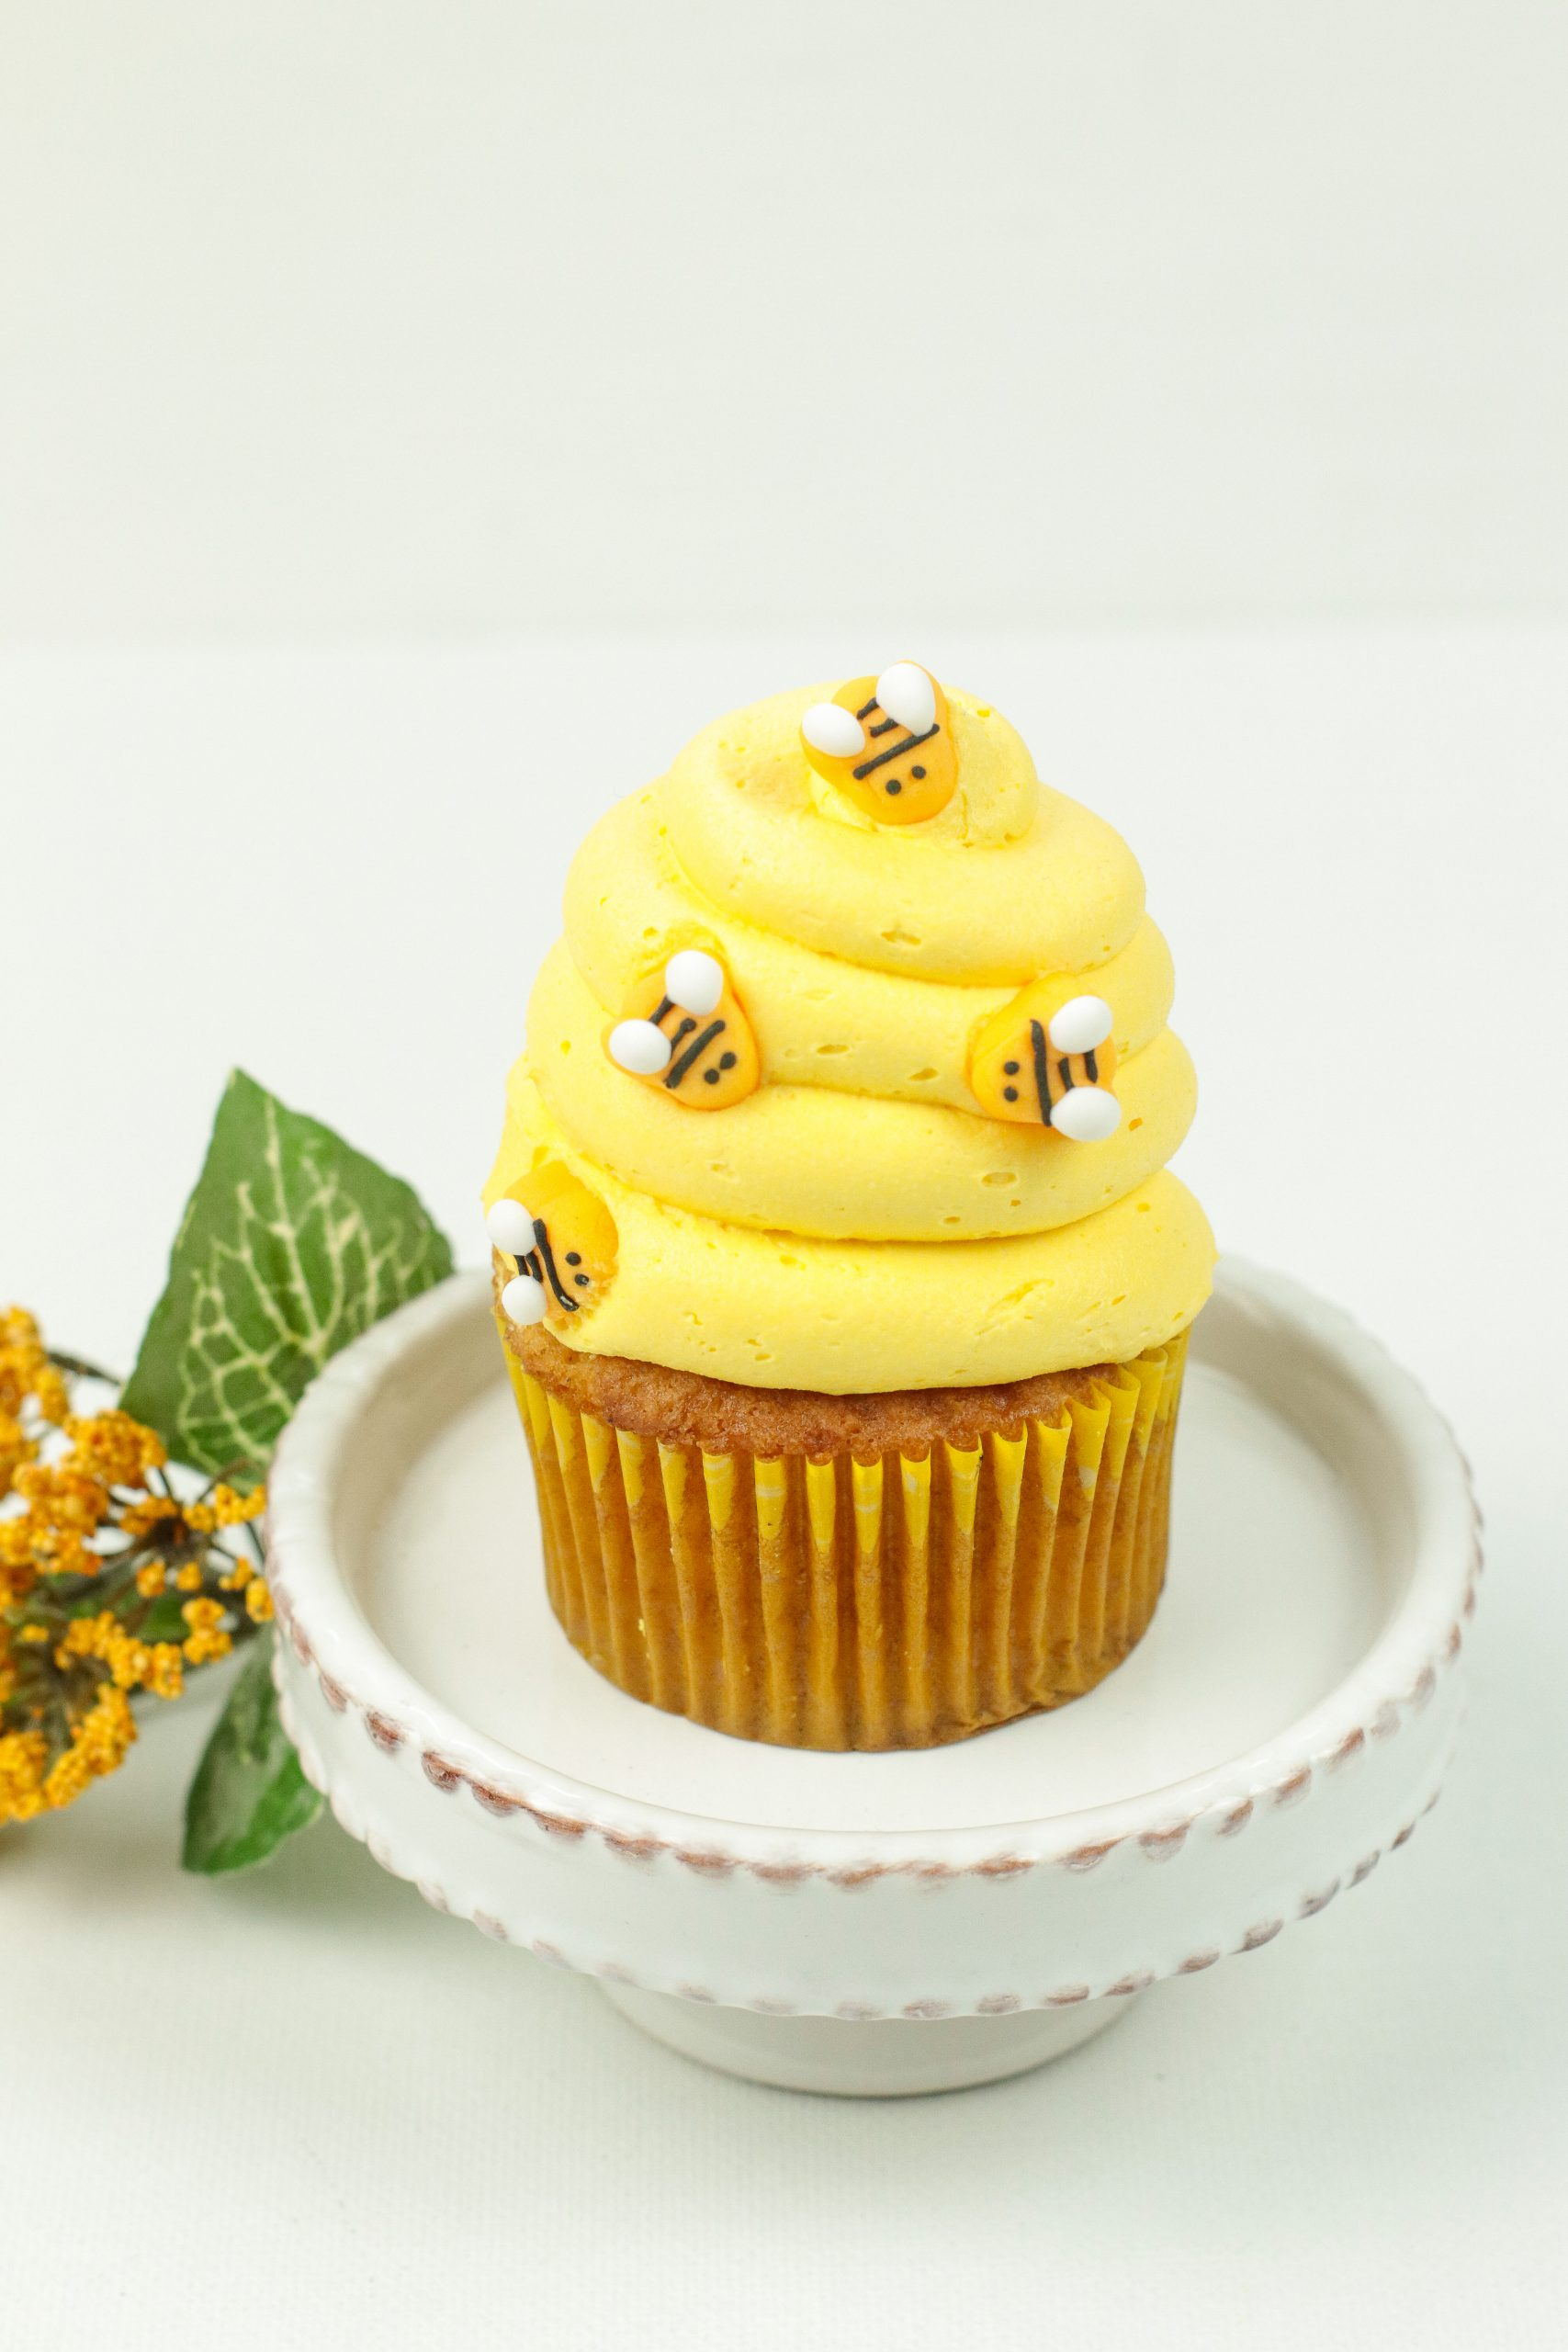 A close up of one of the Honey Cinnamon Bumblebee Cupcakes.